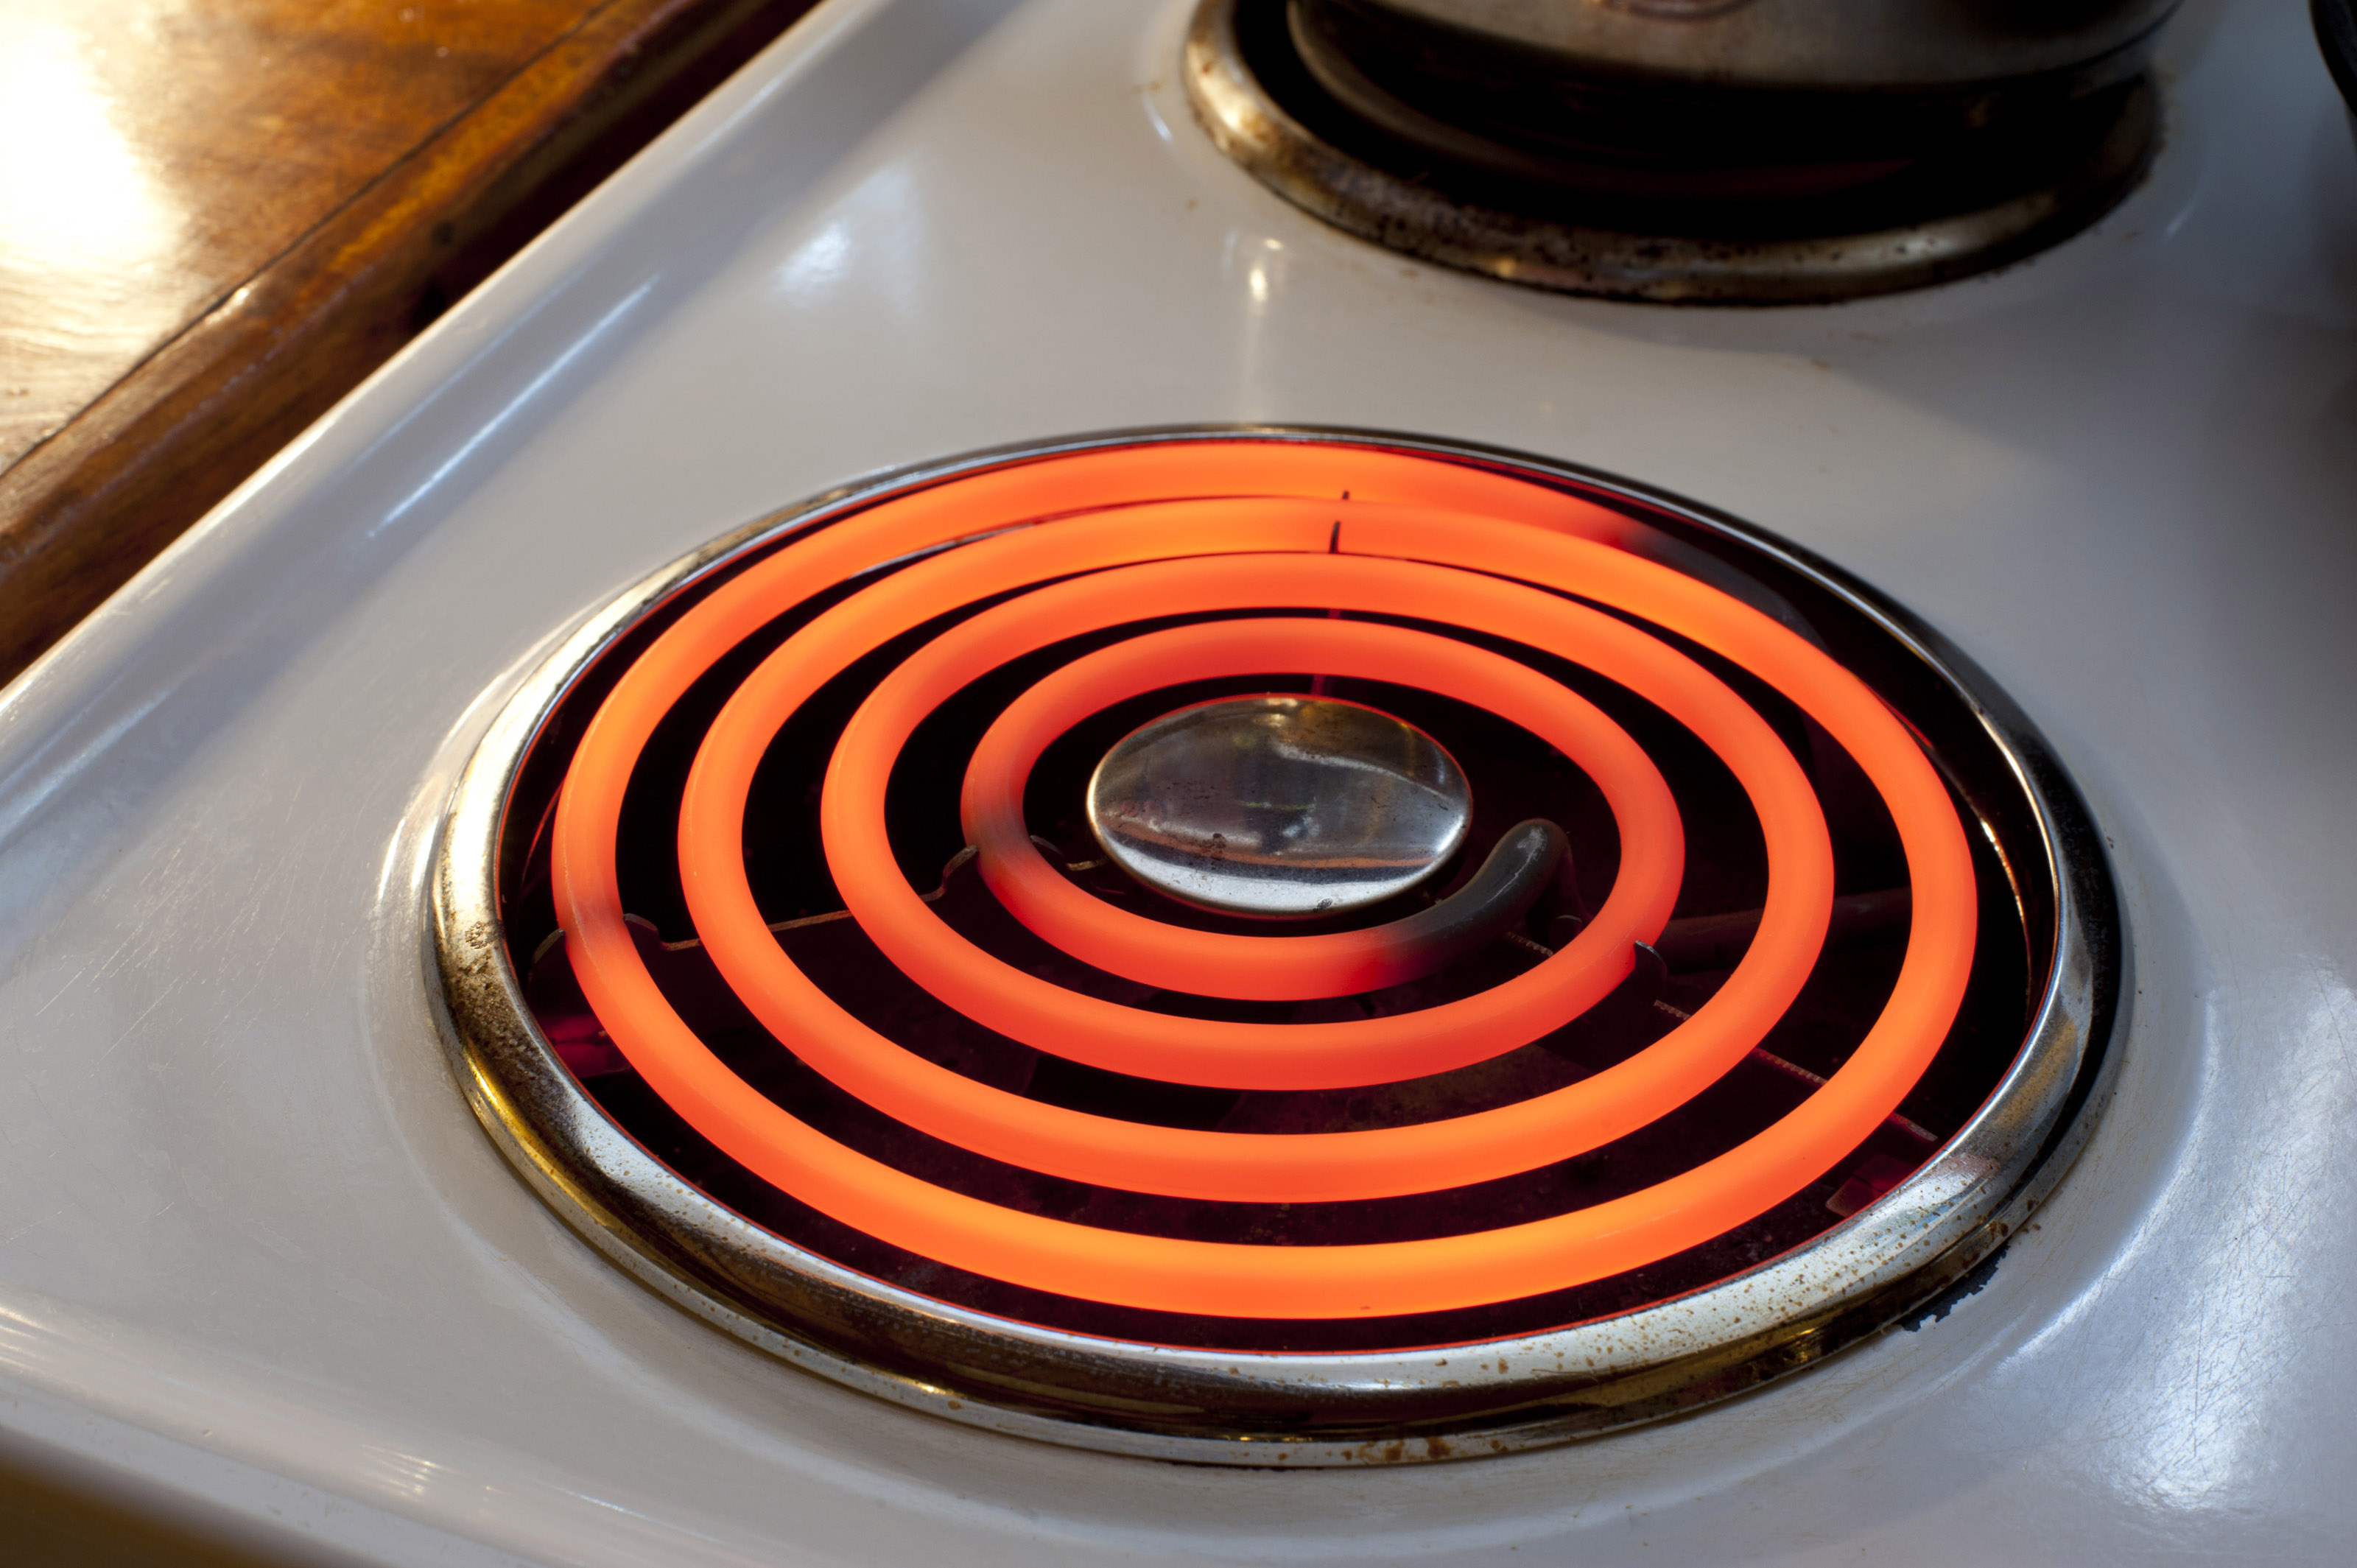 http://stockarch.com/files/13/09/glowing_hotplate.jpg